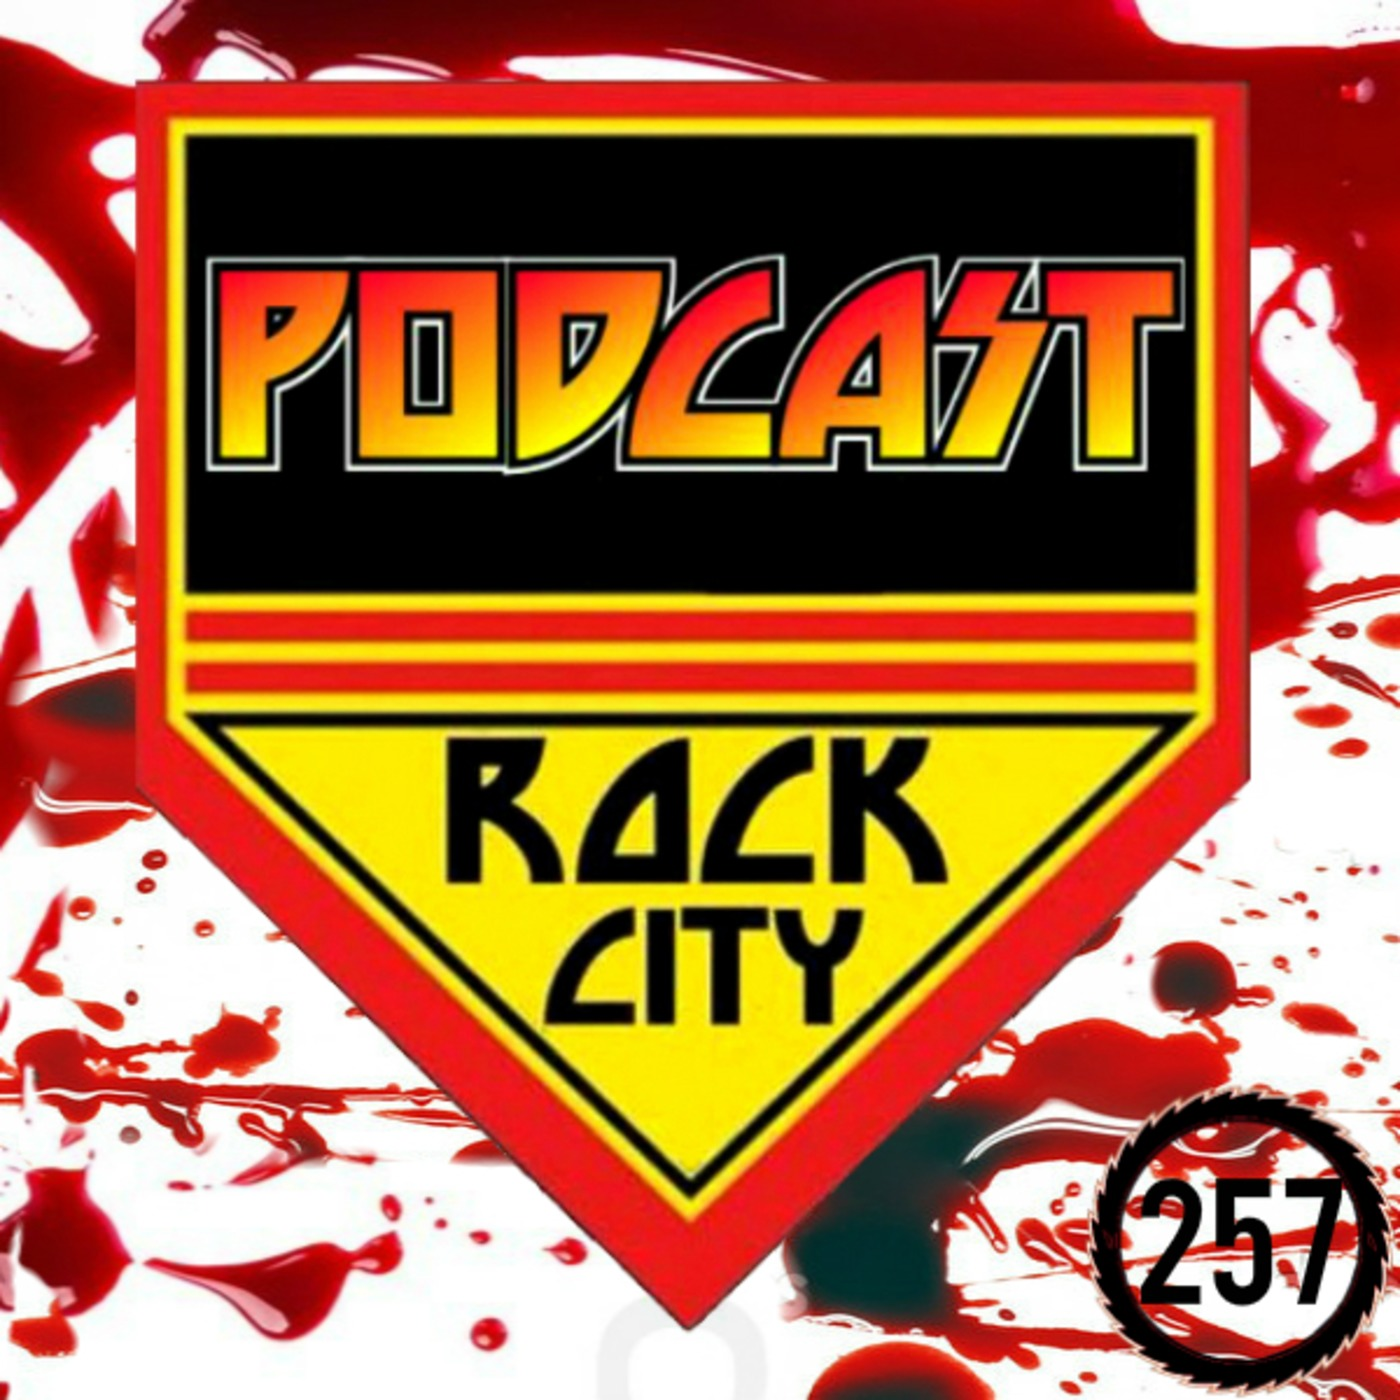 PODCAST ROCK CITY Episode 257 Gene's B-DAY And A Ton Of